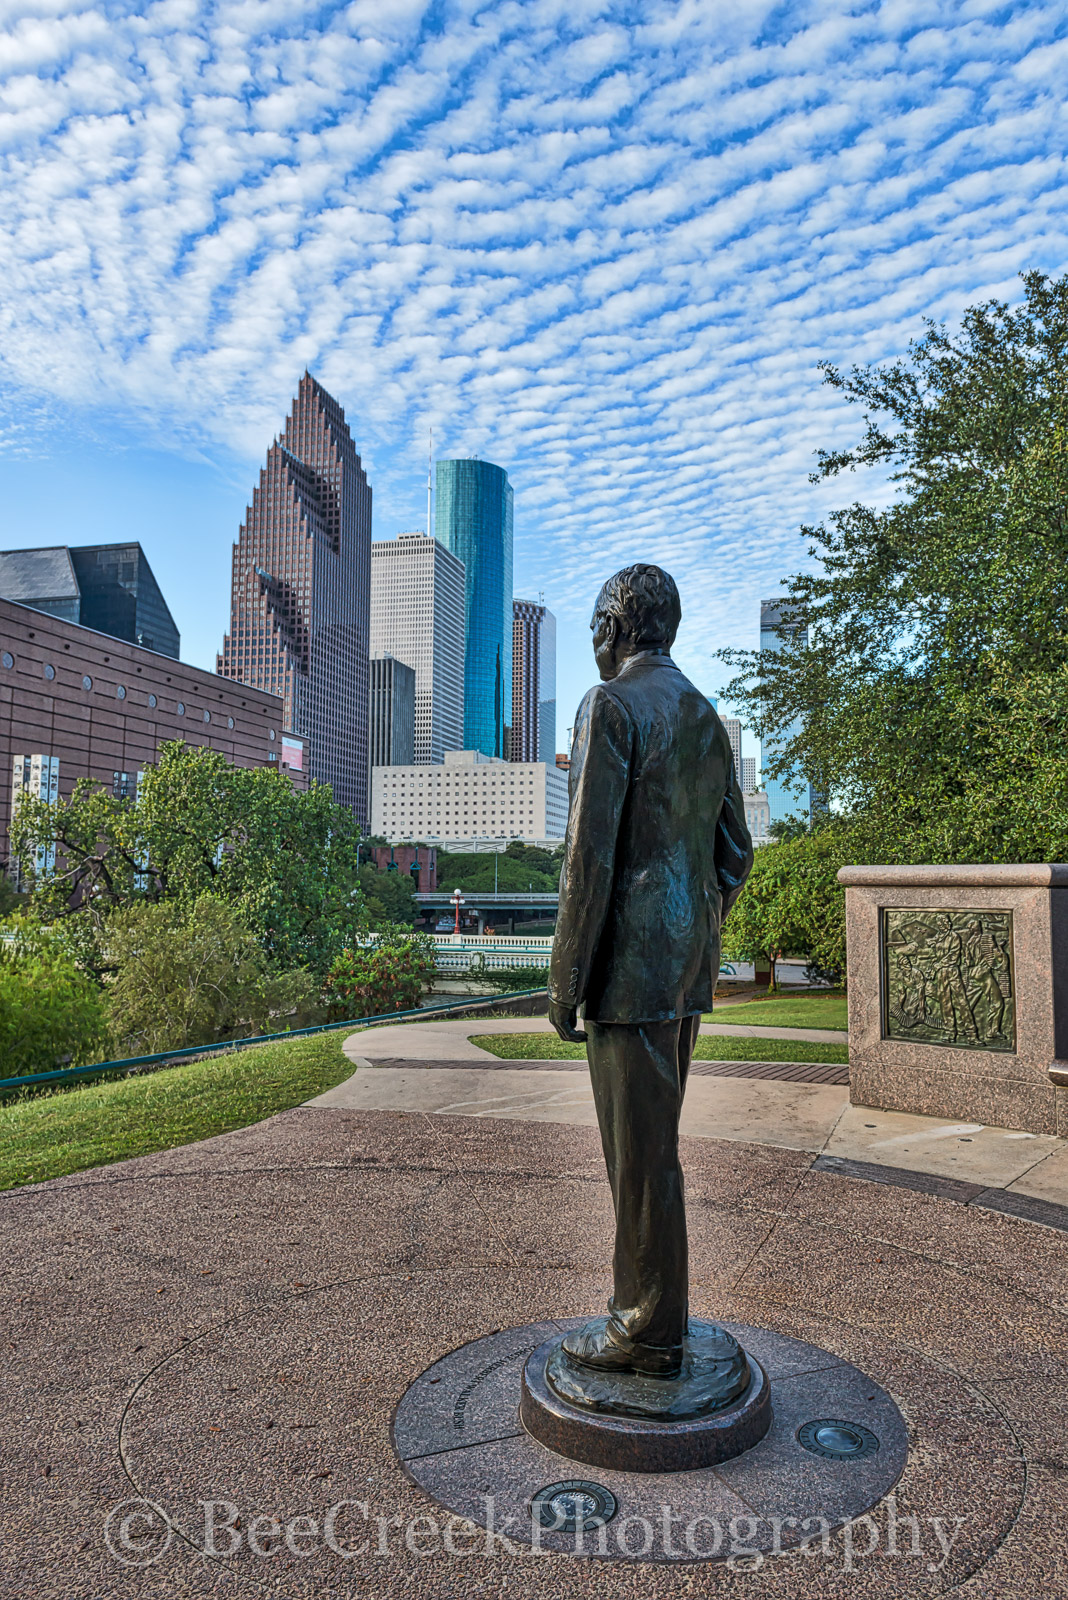 Geroge H Bush, Housotn, Sesquicentennial park, baffalo bayou, city, cityscape, cityscapes, vertical, downtown, historic, history, landmark, monument, park, president, skyline, skylines, statue, theate, photo